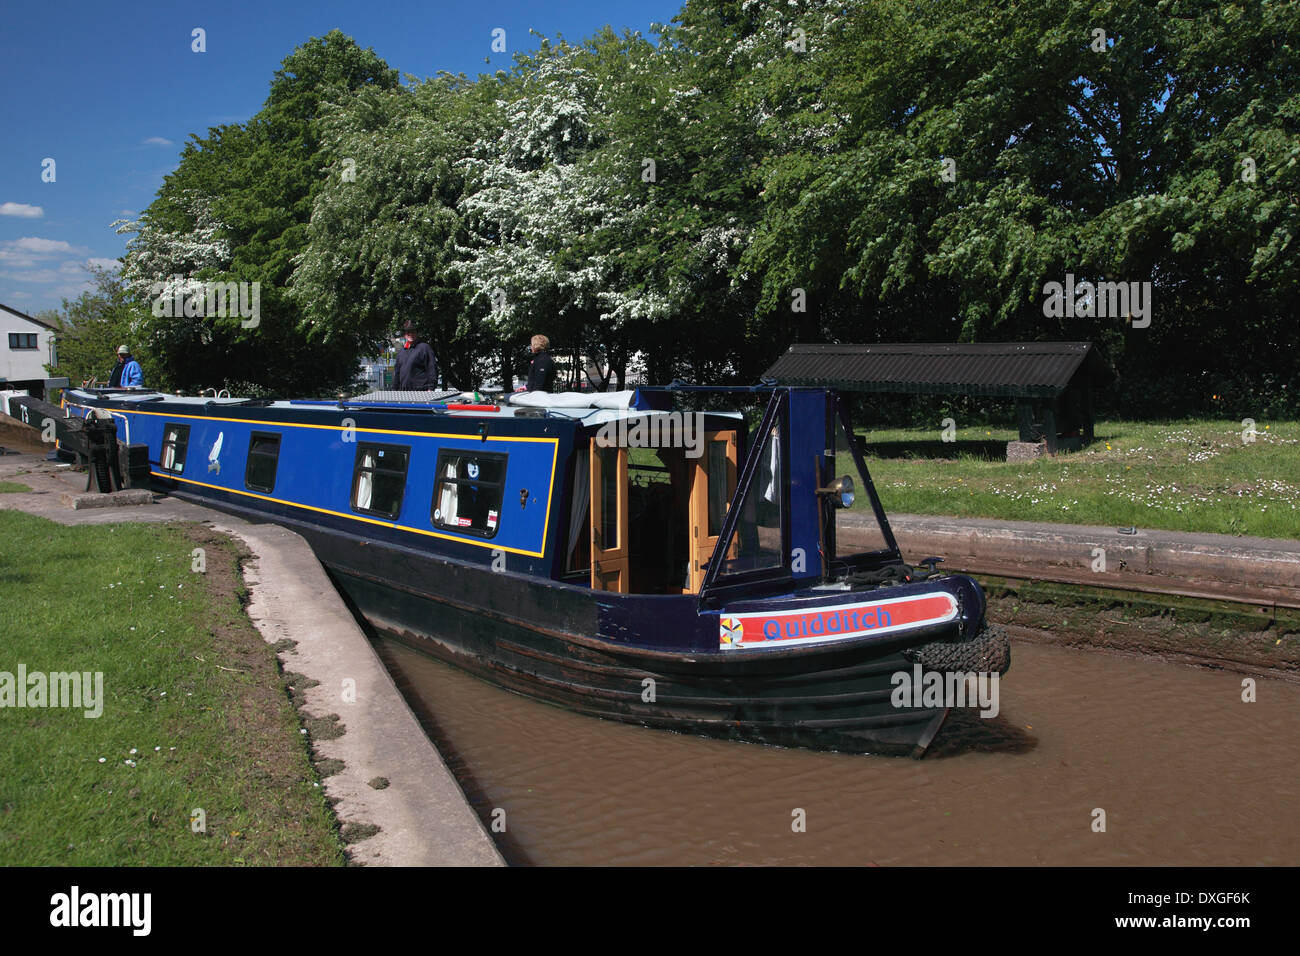 A narrowboat leaving Lock 73 travelling towards Kings Lock on the Trent and Mersey Canal at Middlewich - Stock Image